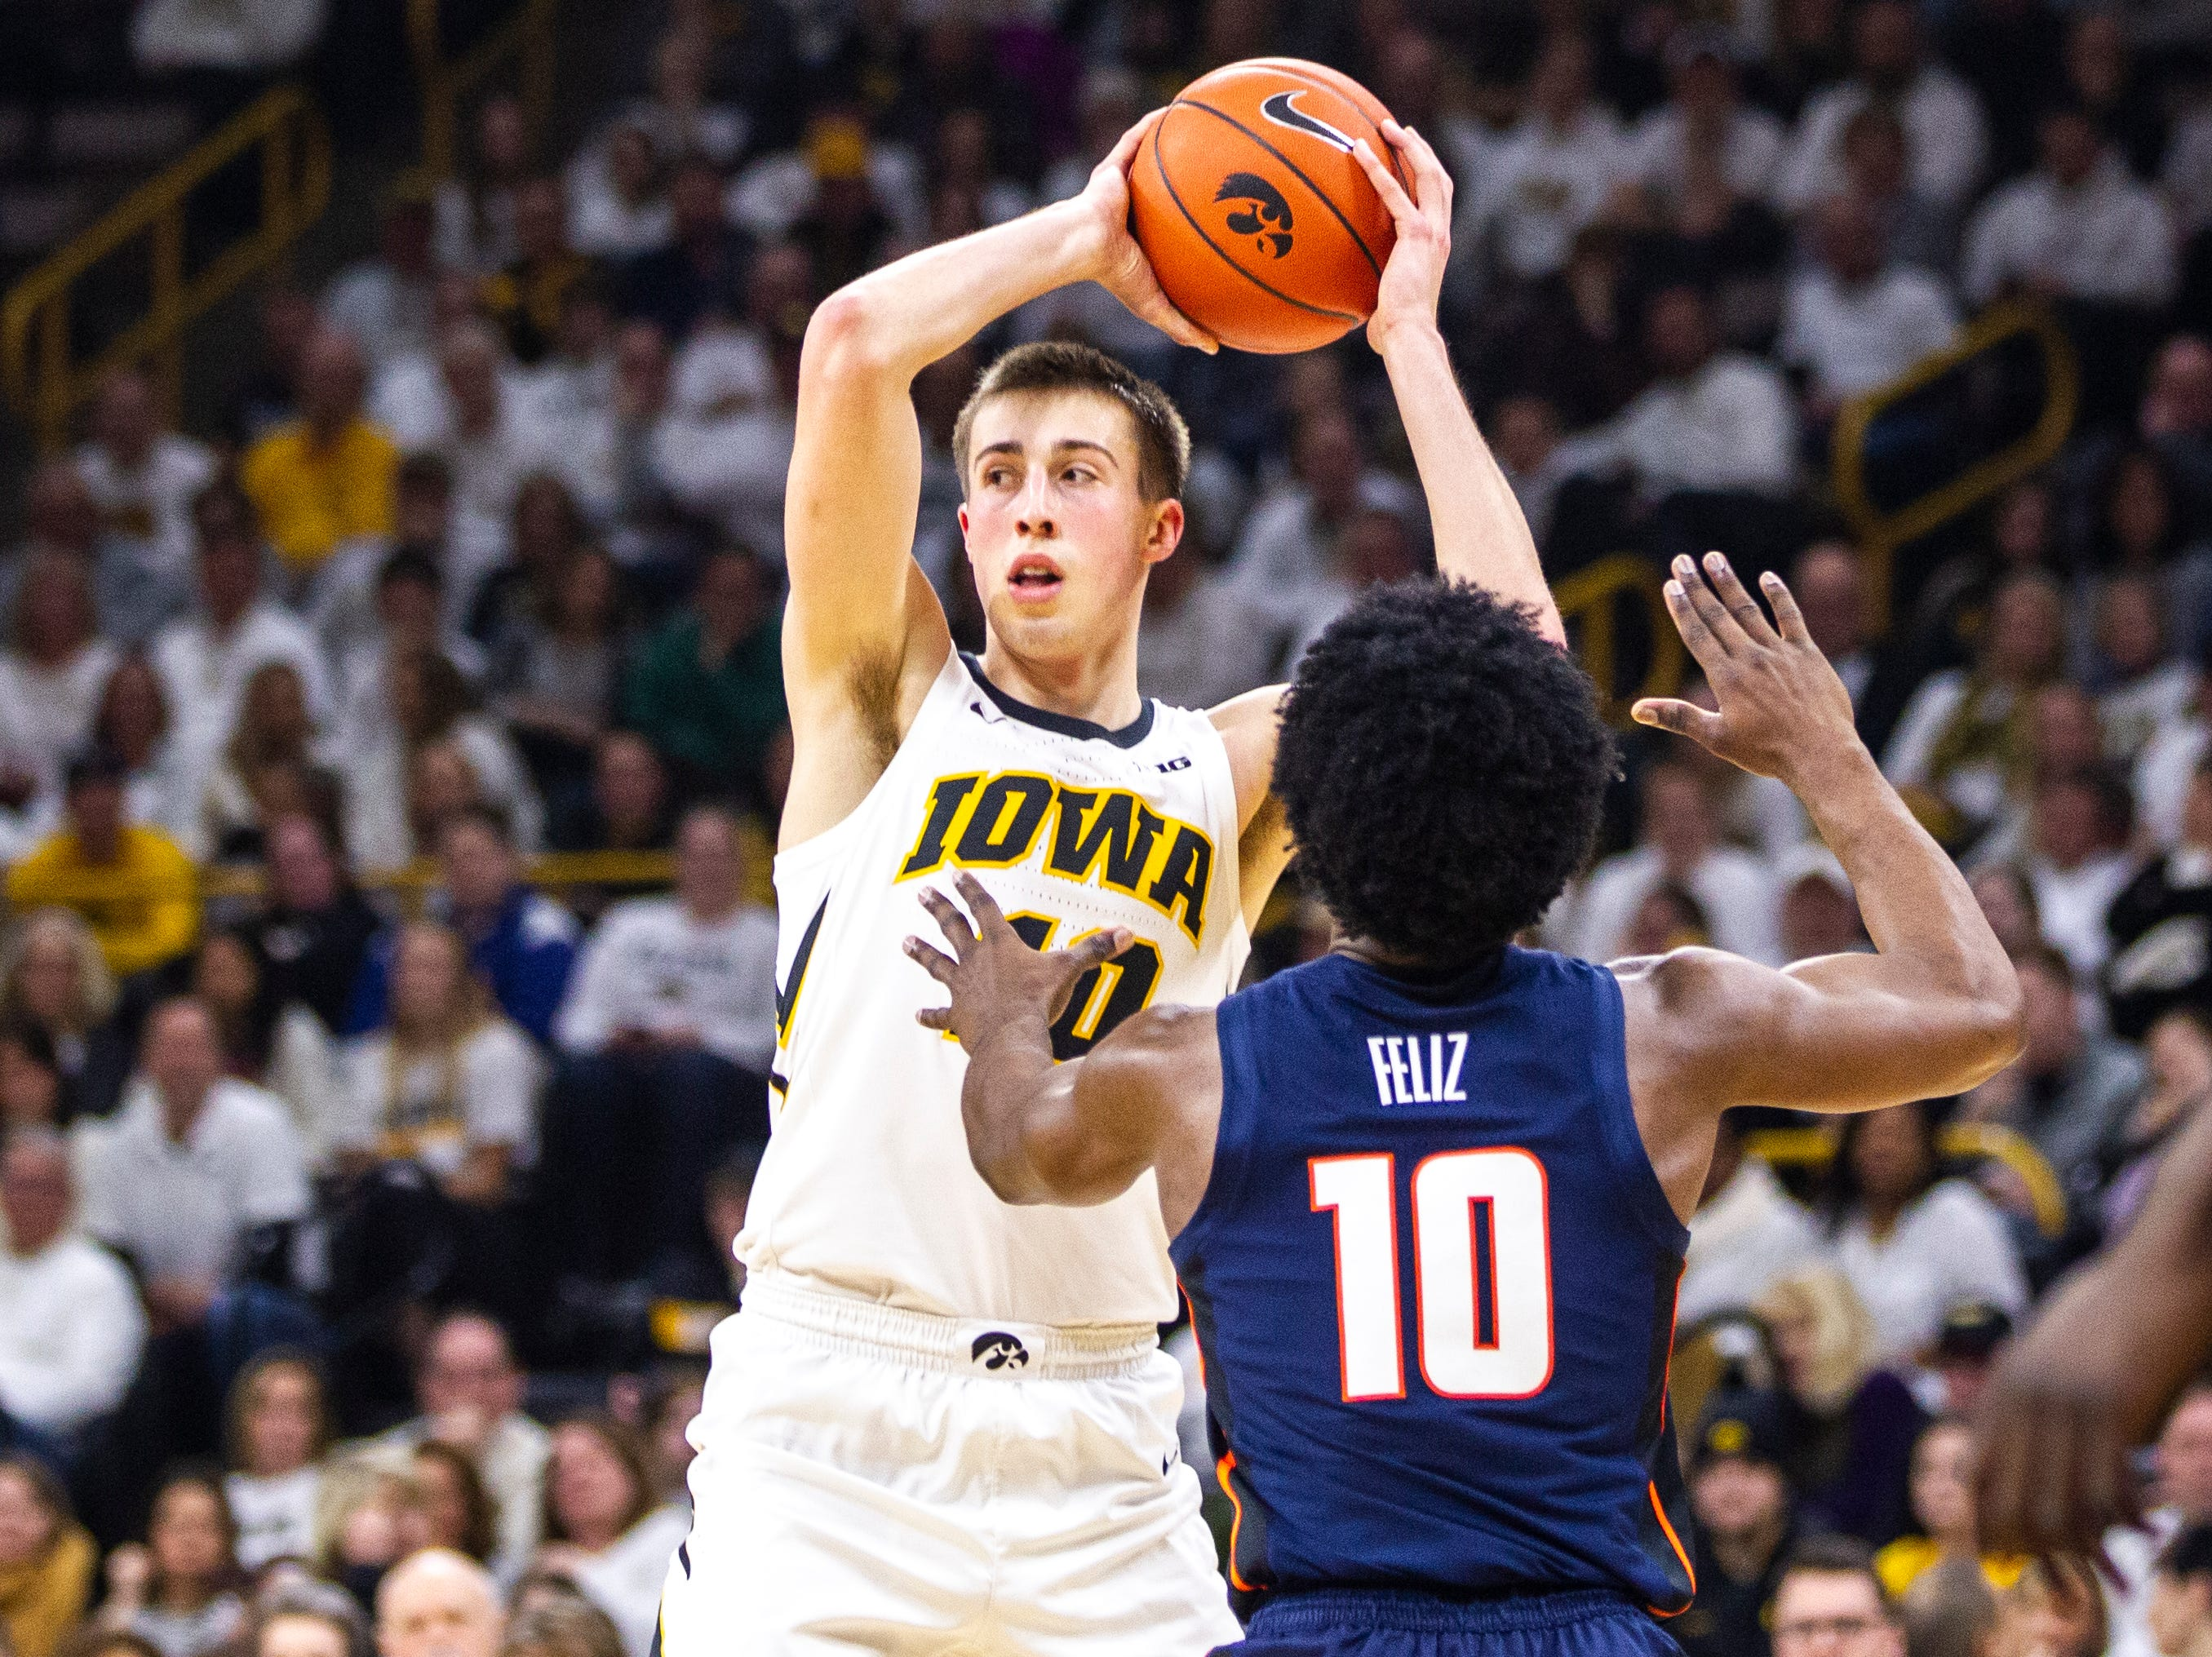 Iowa guard Joe Wieskamp (10) looks to pass during a NCAA Big Ten Conference men's basketball game on Sunday, Jan. 20, 2019, at Carver-Hawkeye Arena in Iowa City, Iowa.